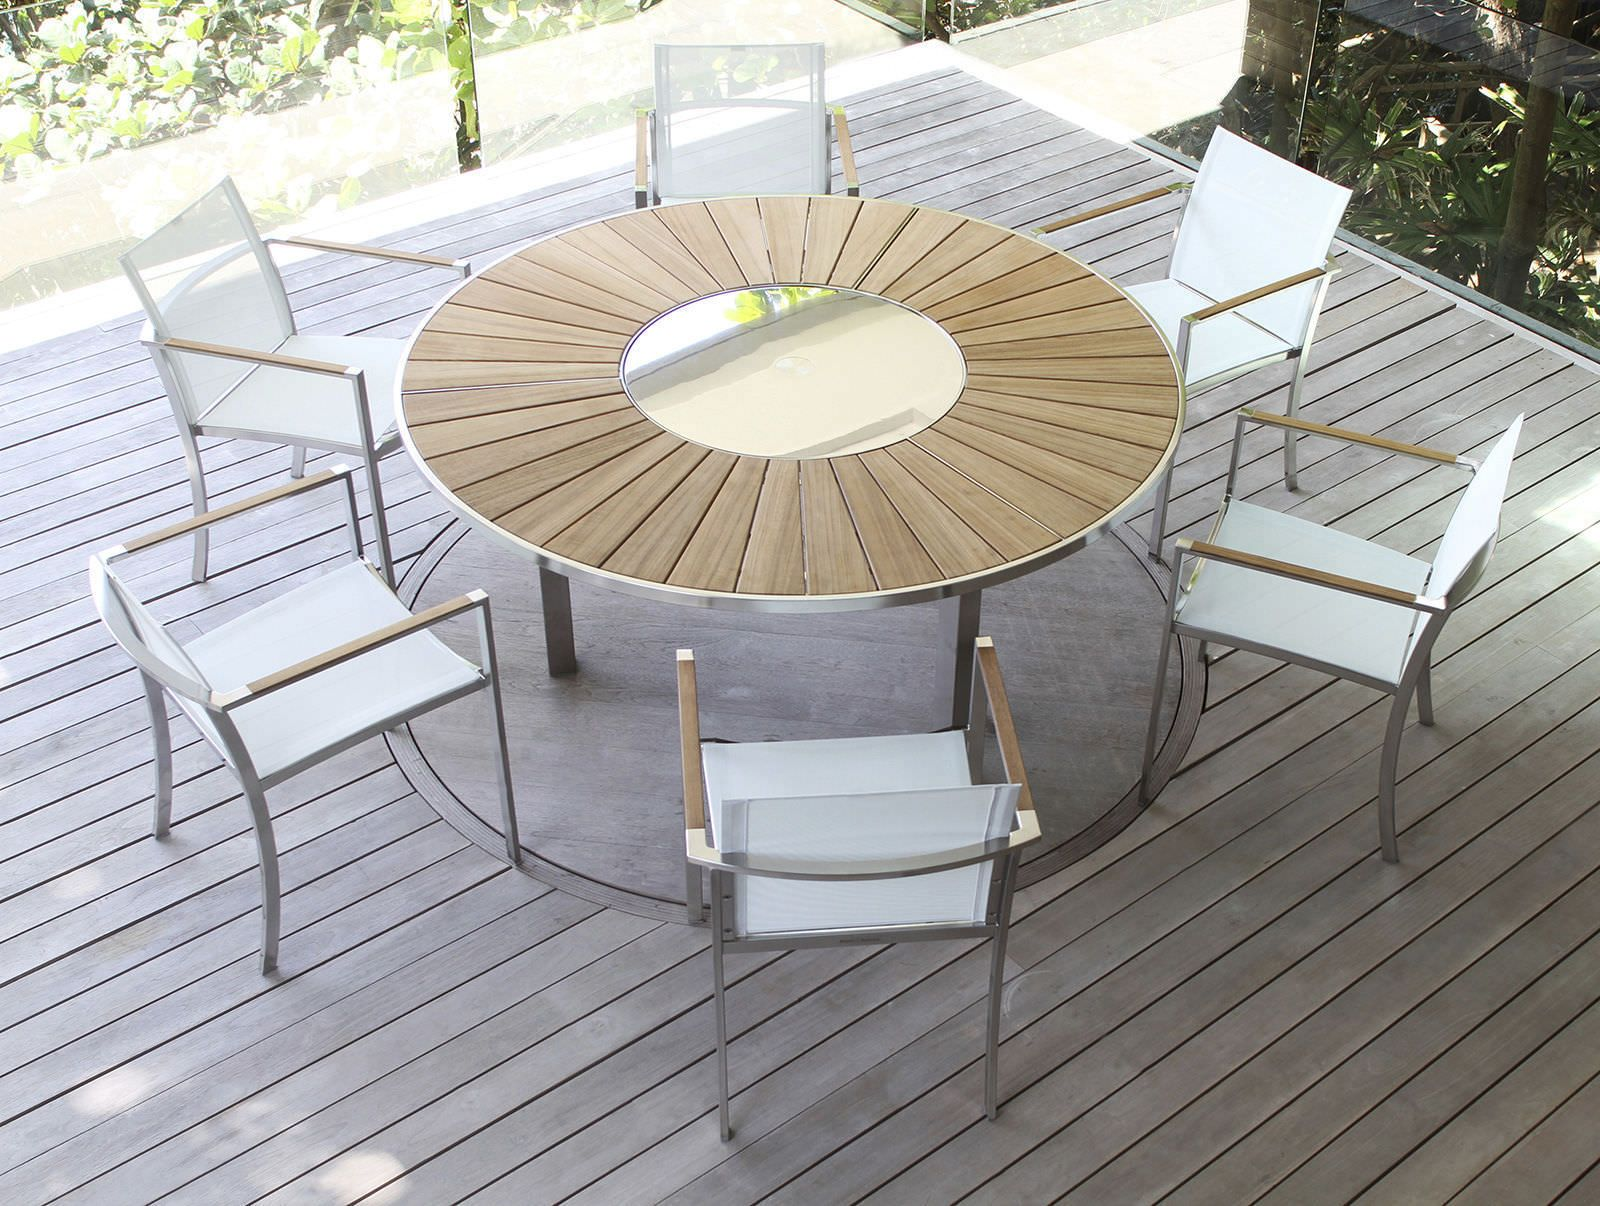 Table Contemporaine De Jardin Ovale Ronde Ozn 240 By Kris Van Puyvelde Royal Botania